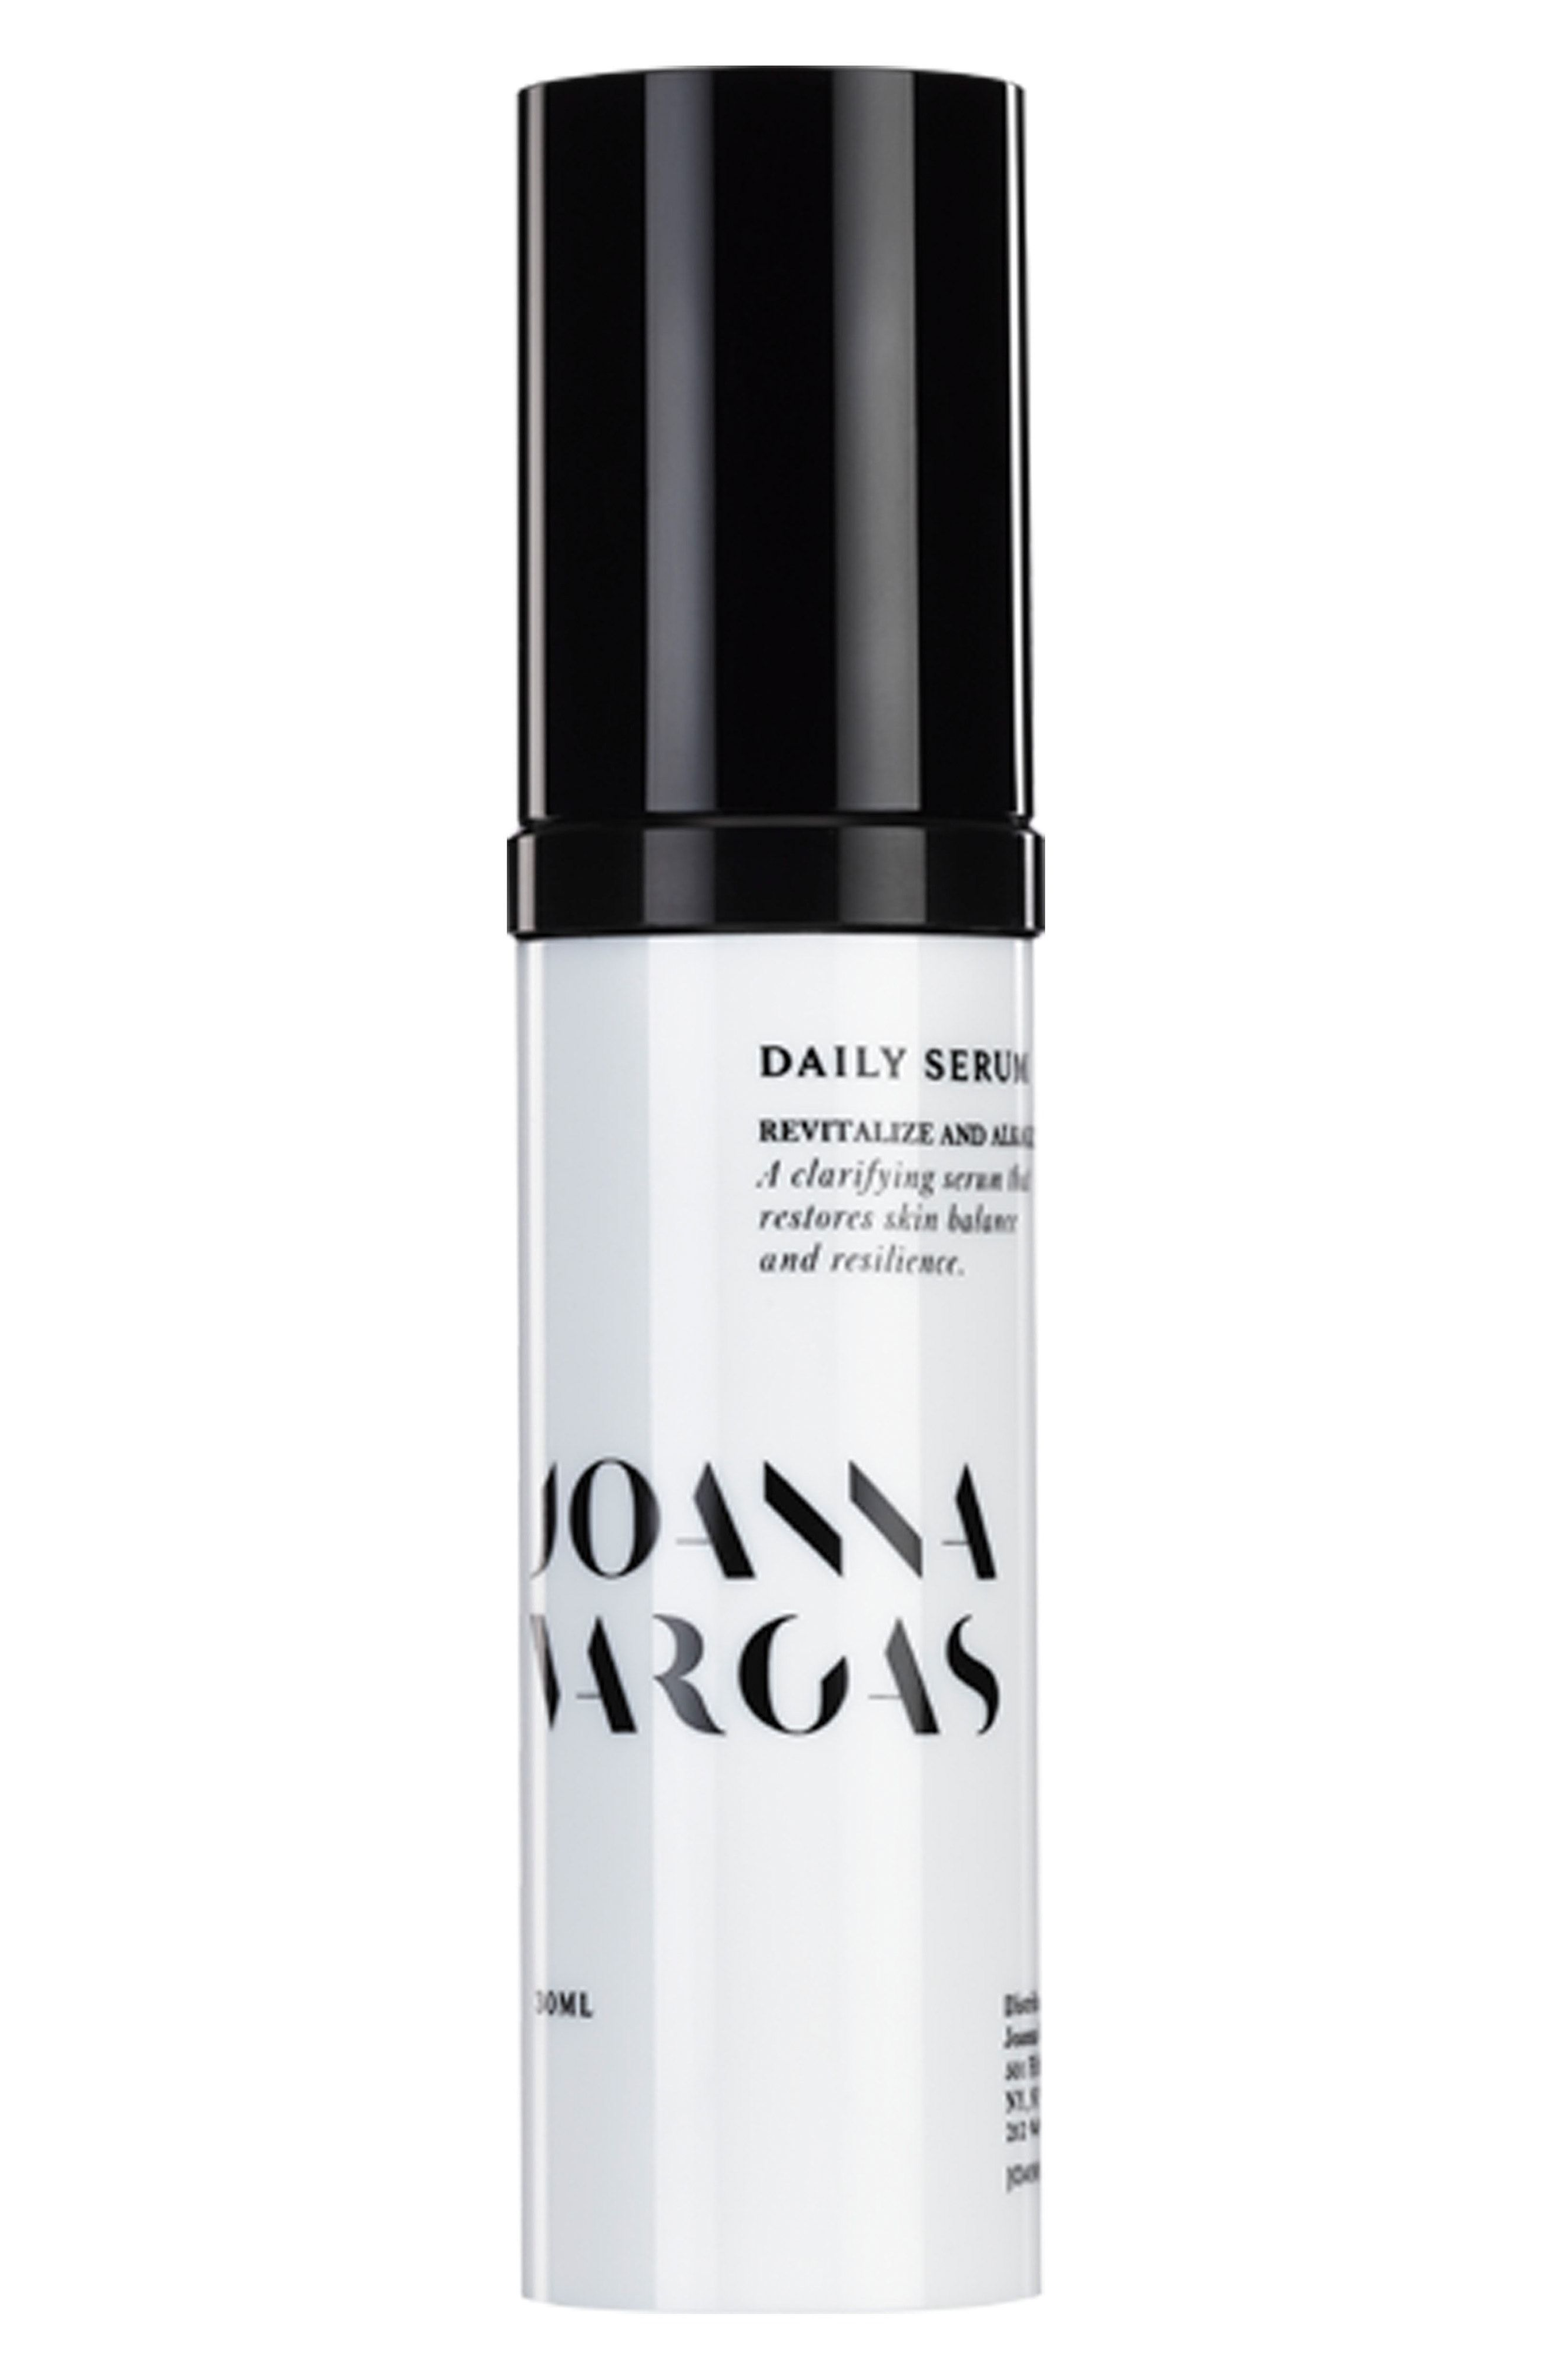 18 Best Anti-Aging Serums for 2019 - Editor-Approved Wrinkle Serums for Your Face